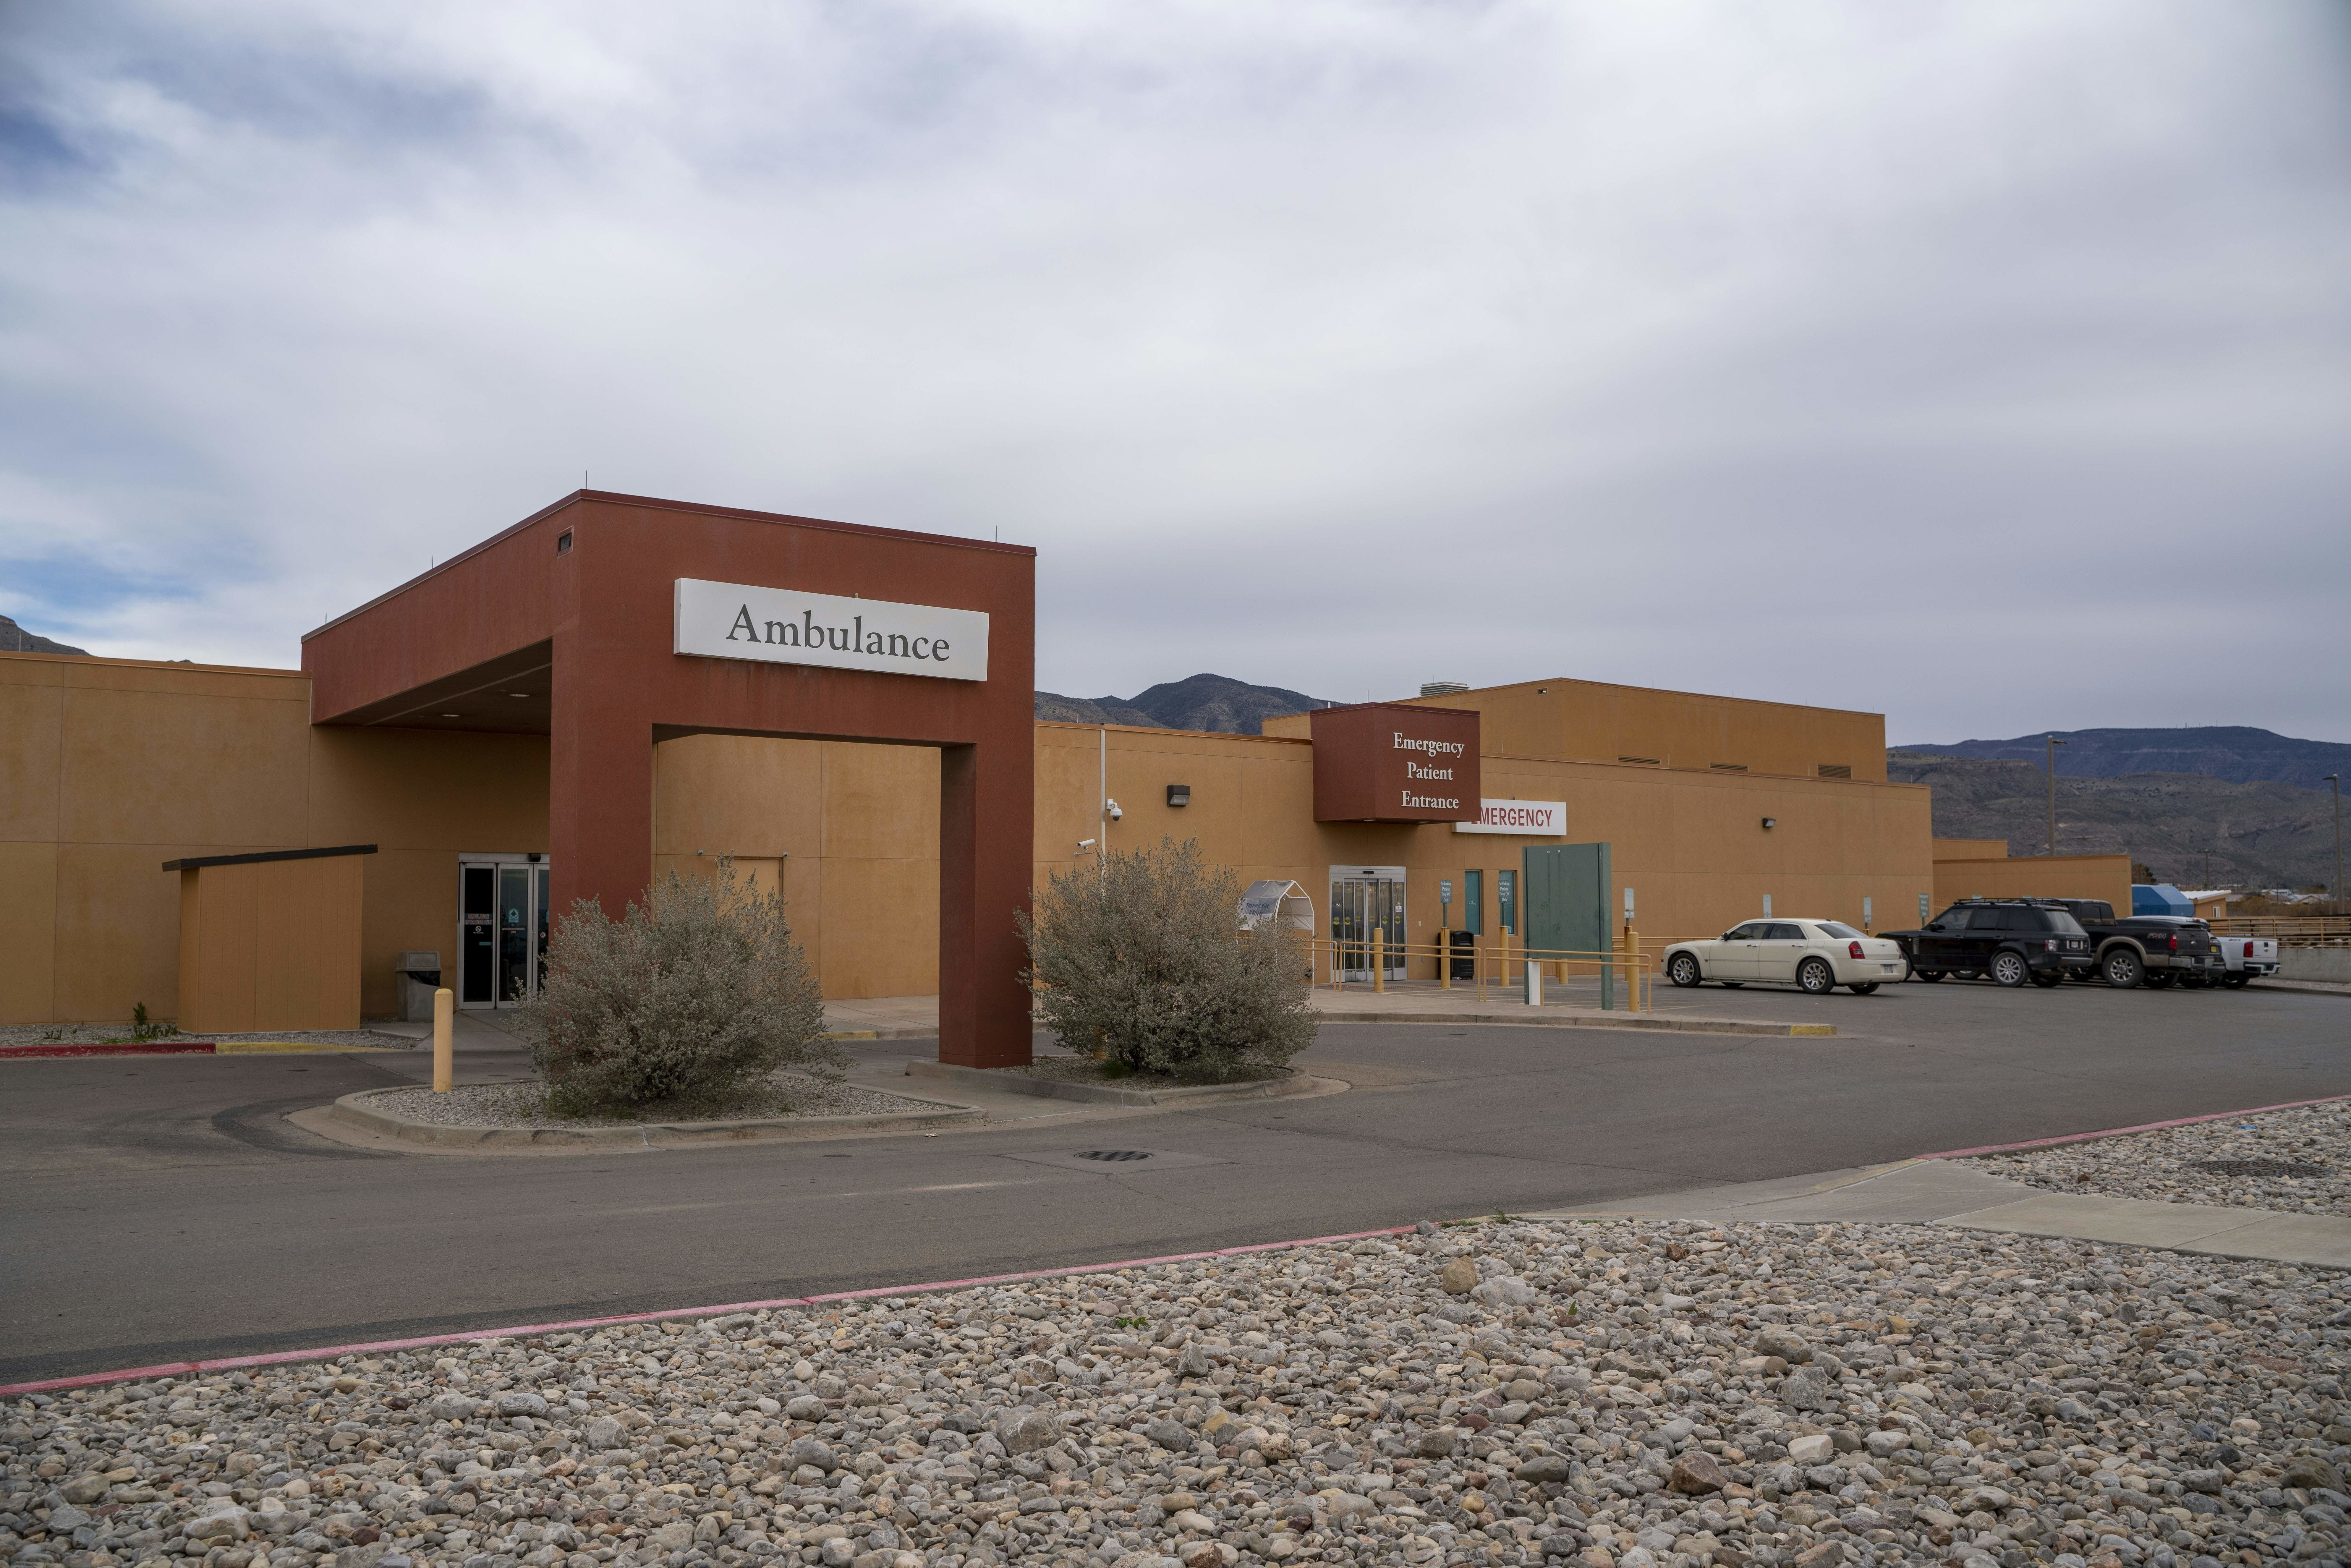 Gerald Champion Regional Medical Center in Alamogordo, New Mexico, on December 25, 2018, where Customs and Border Protection reported the death of an eight-year-old migrant from Guatemala which occurred shortly after midnight on Christmas morning. - The boy, who was being held in CBP custody with his father, had been sick and diagnosed with a cold, but his situation deteriorated and he started vomiting. The cause of the boys death is not known, and he is the second child to die in CBP custody this month. (Photo by Paul Ratje / AFP)        (Photo credit should read PAUL RATJE/AFP/Getty Images)